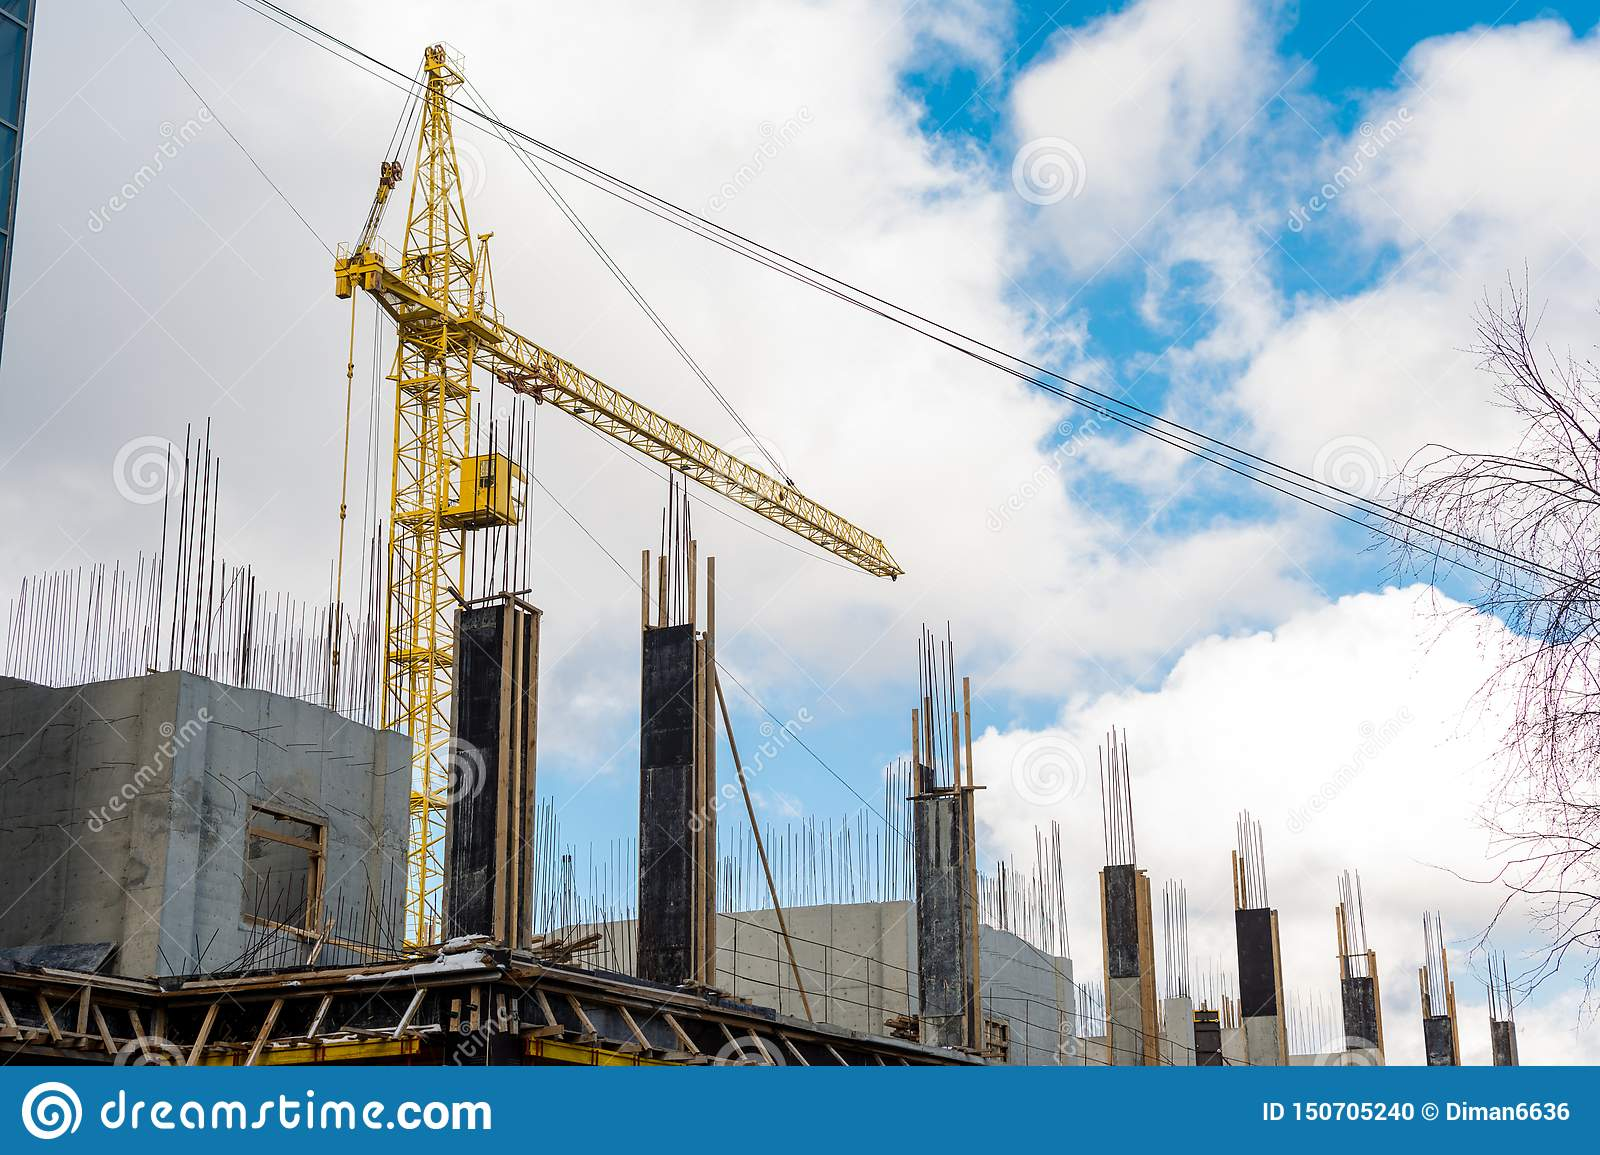 The process of building a multi-storey residential building, a yellow tower crane, poured concrete columns with fittings against a